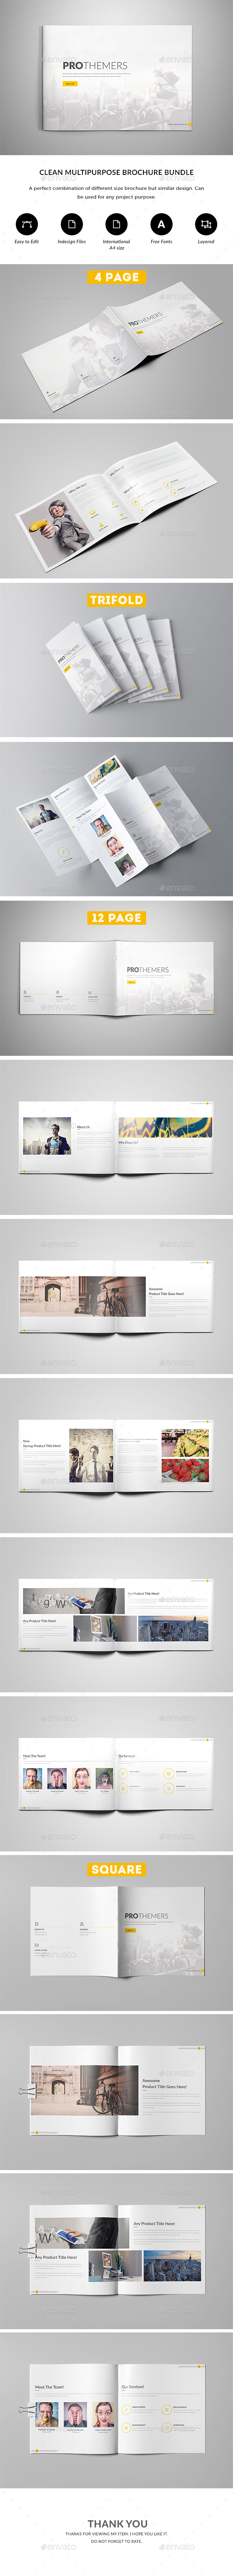 Clean Multipurpose Brochure Bundle - Brochures Print Templates